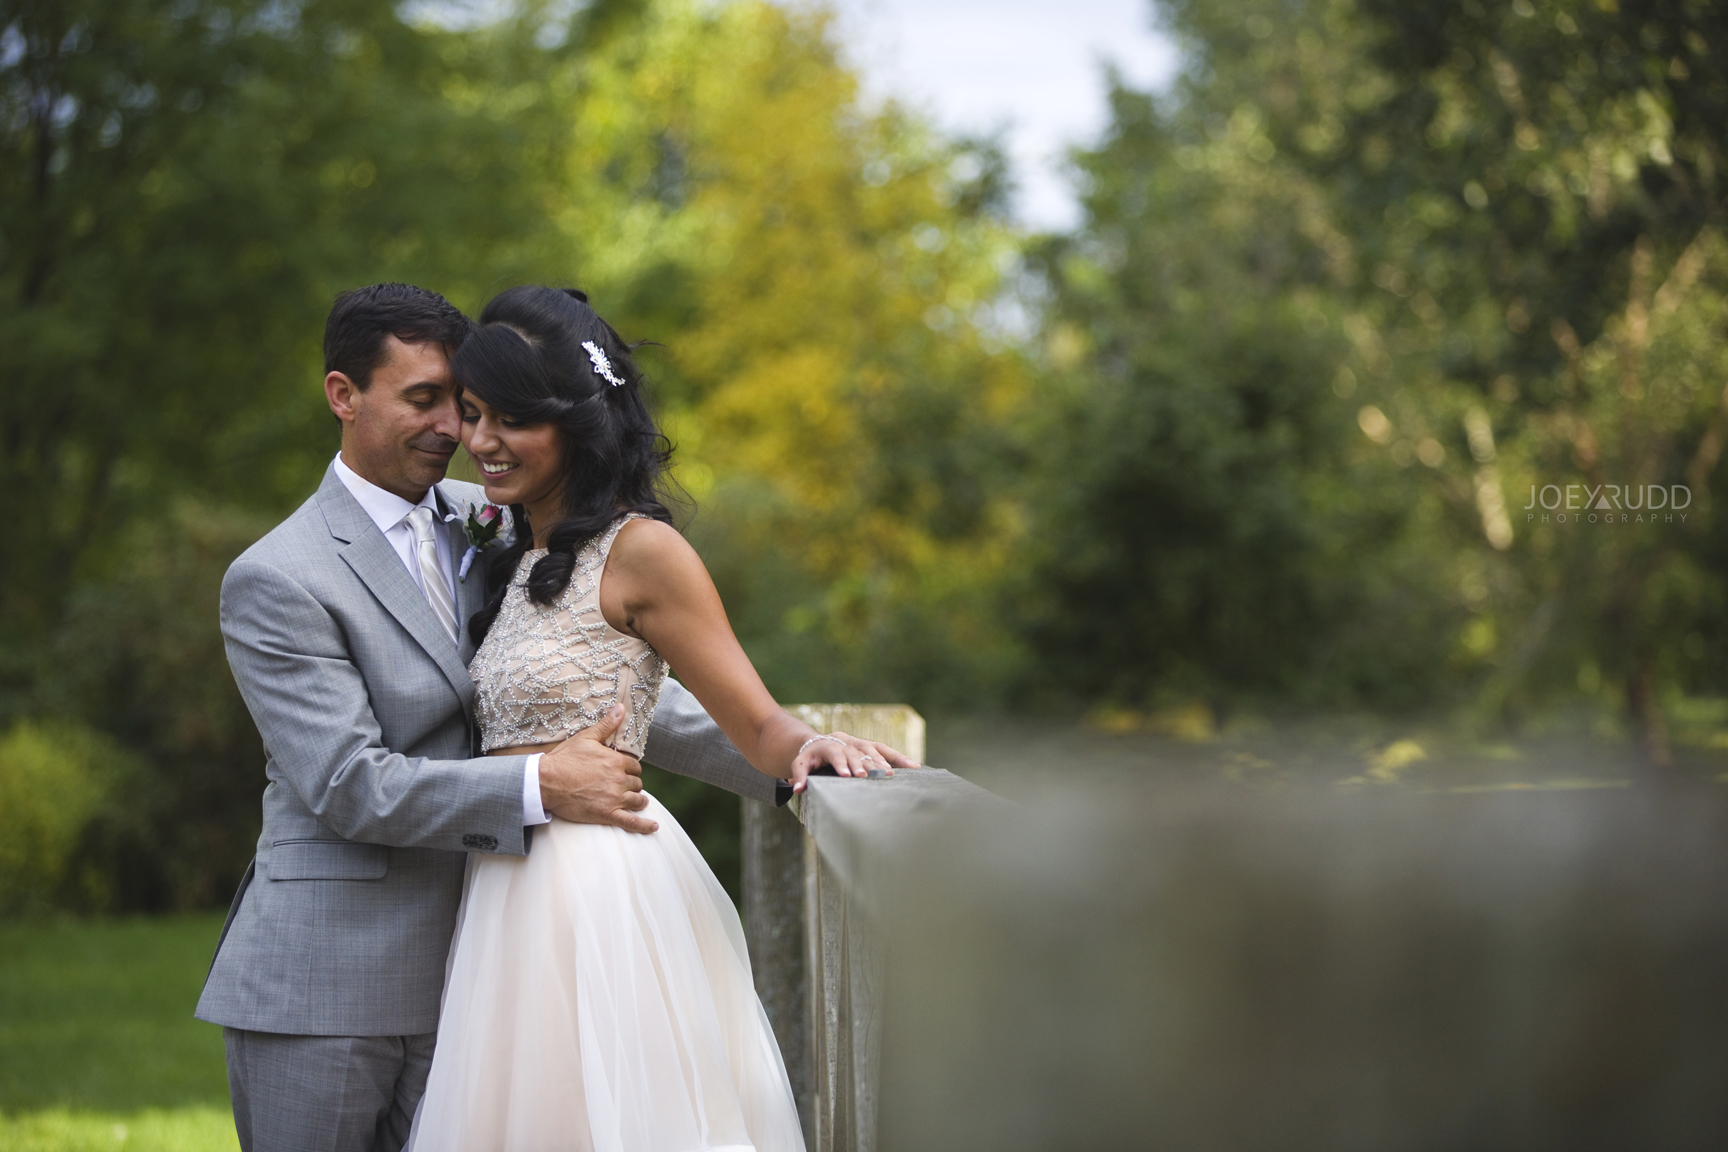 Elopement Wedding at the Arboretum by Ottawa Wedding Photographer Joey Rudd Photography Fall Colours